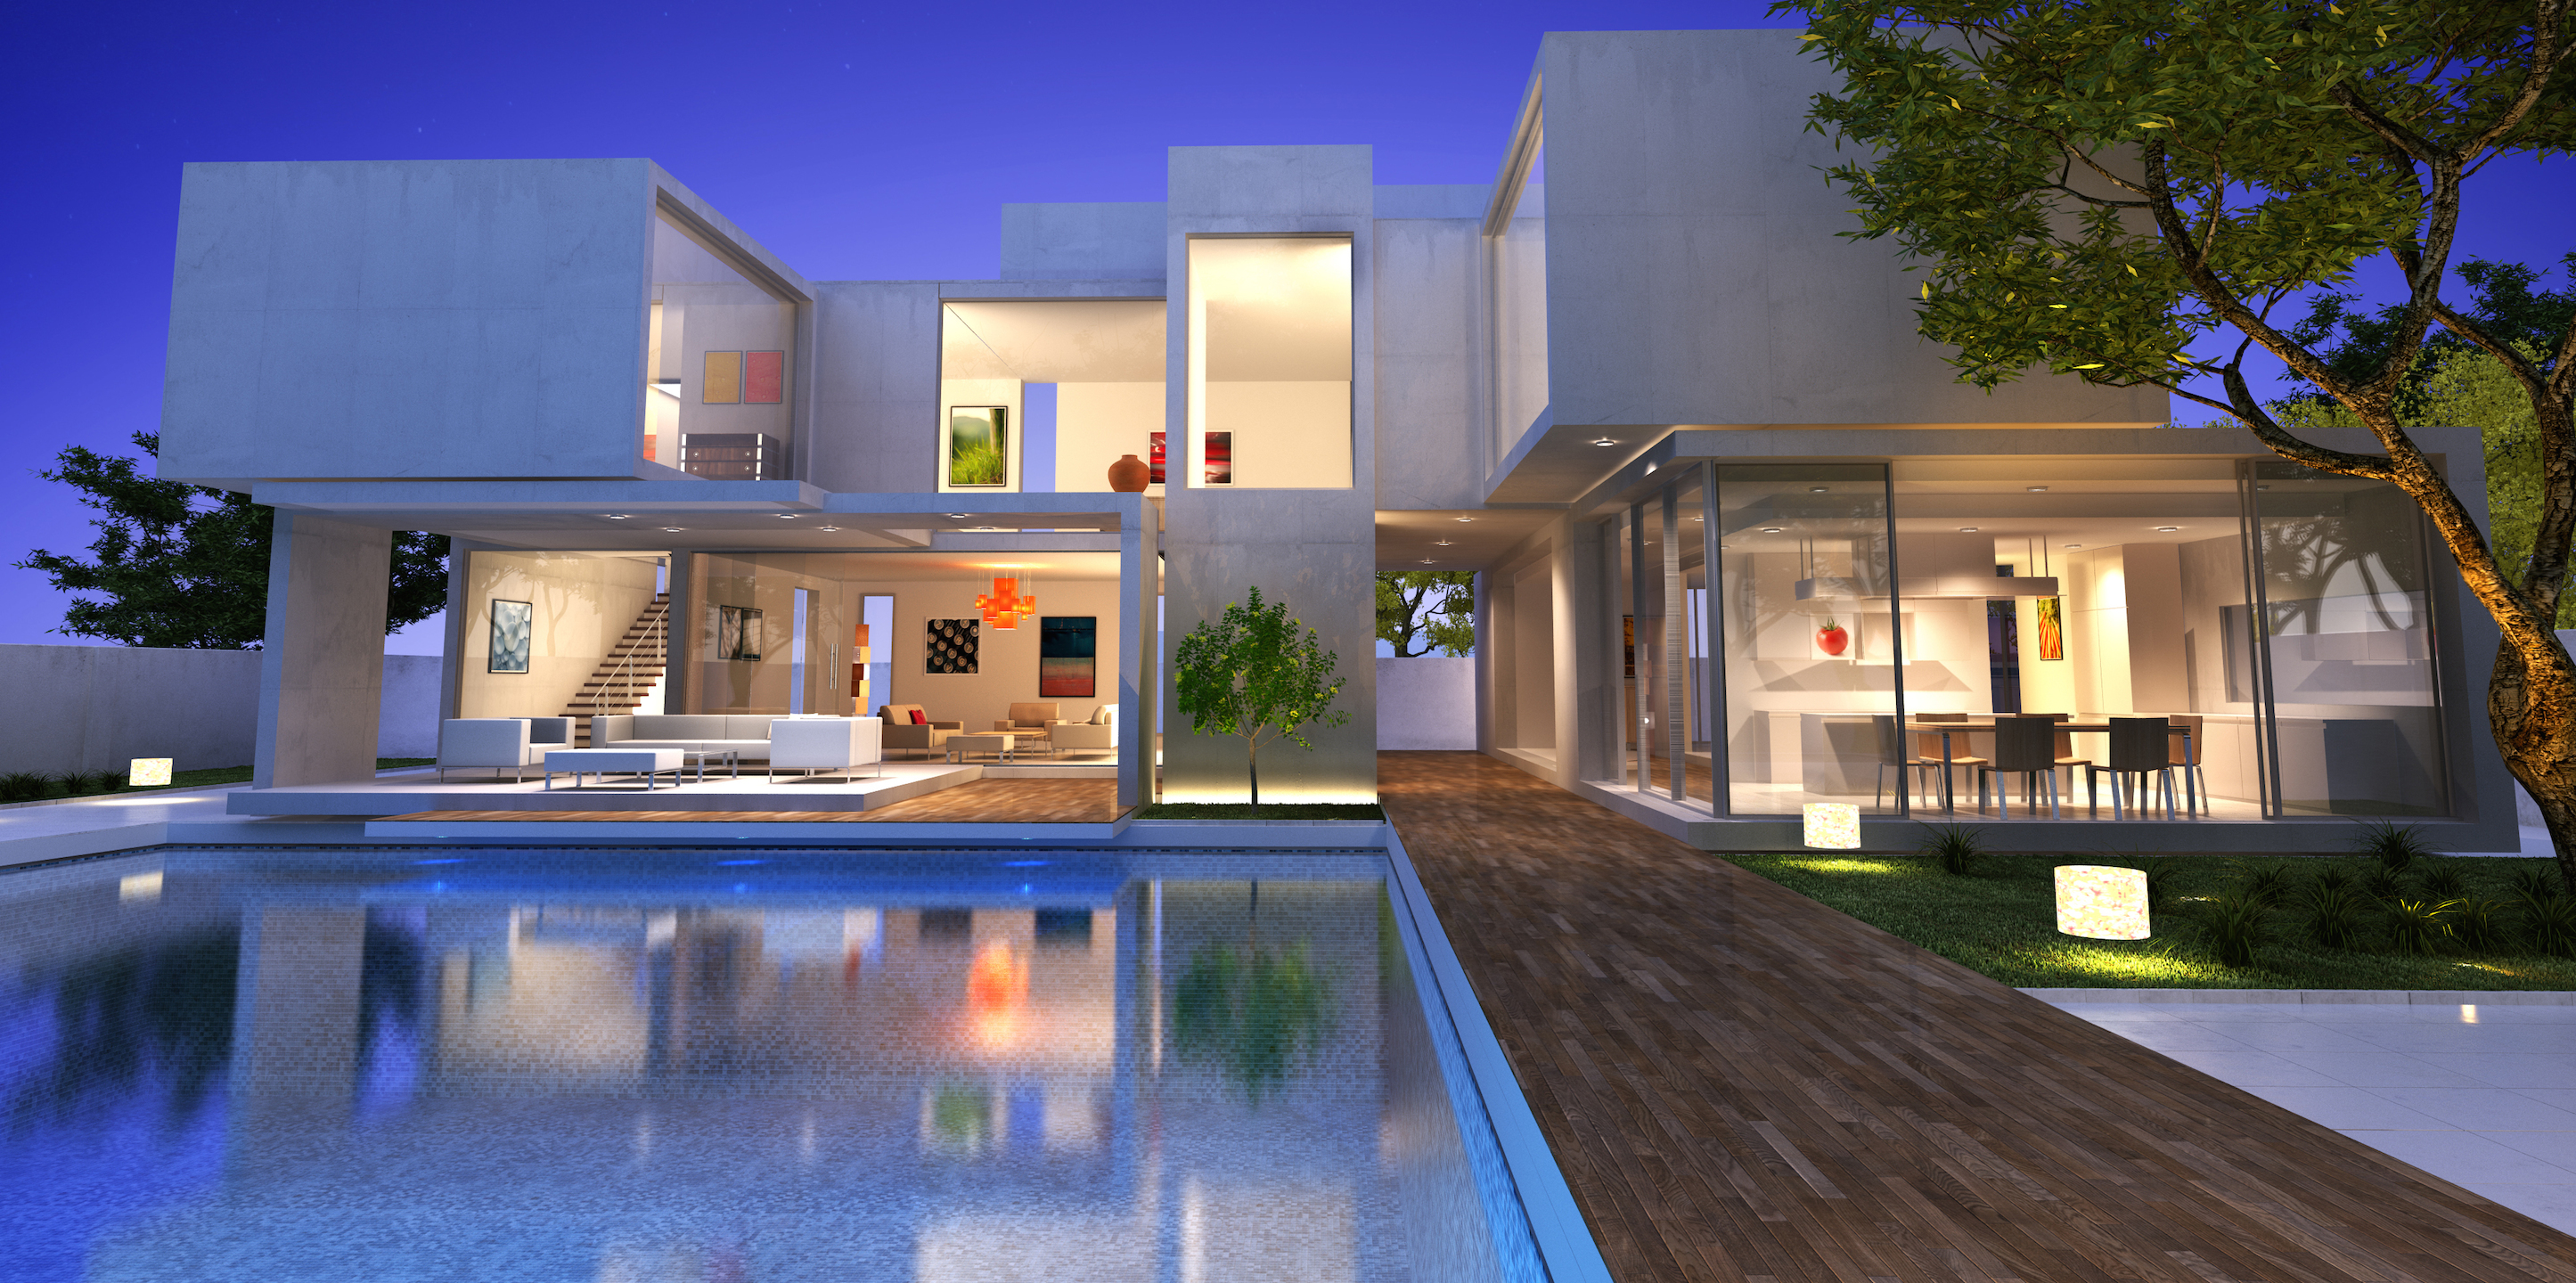 Orange county luxury homes and condos coastal real estate info for Most expensive homes in orange county